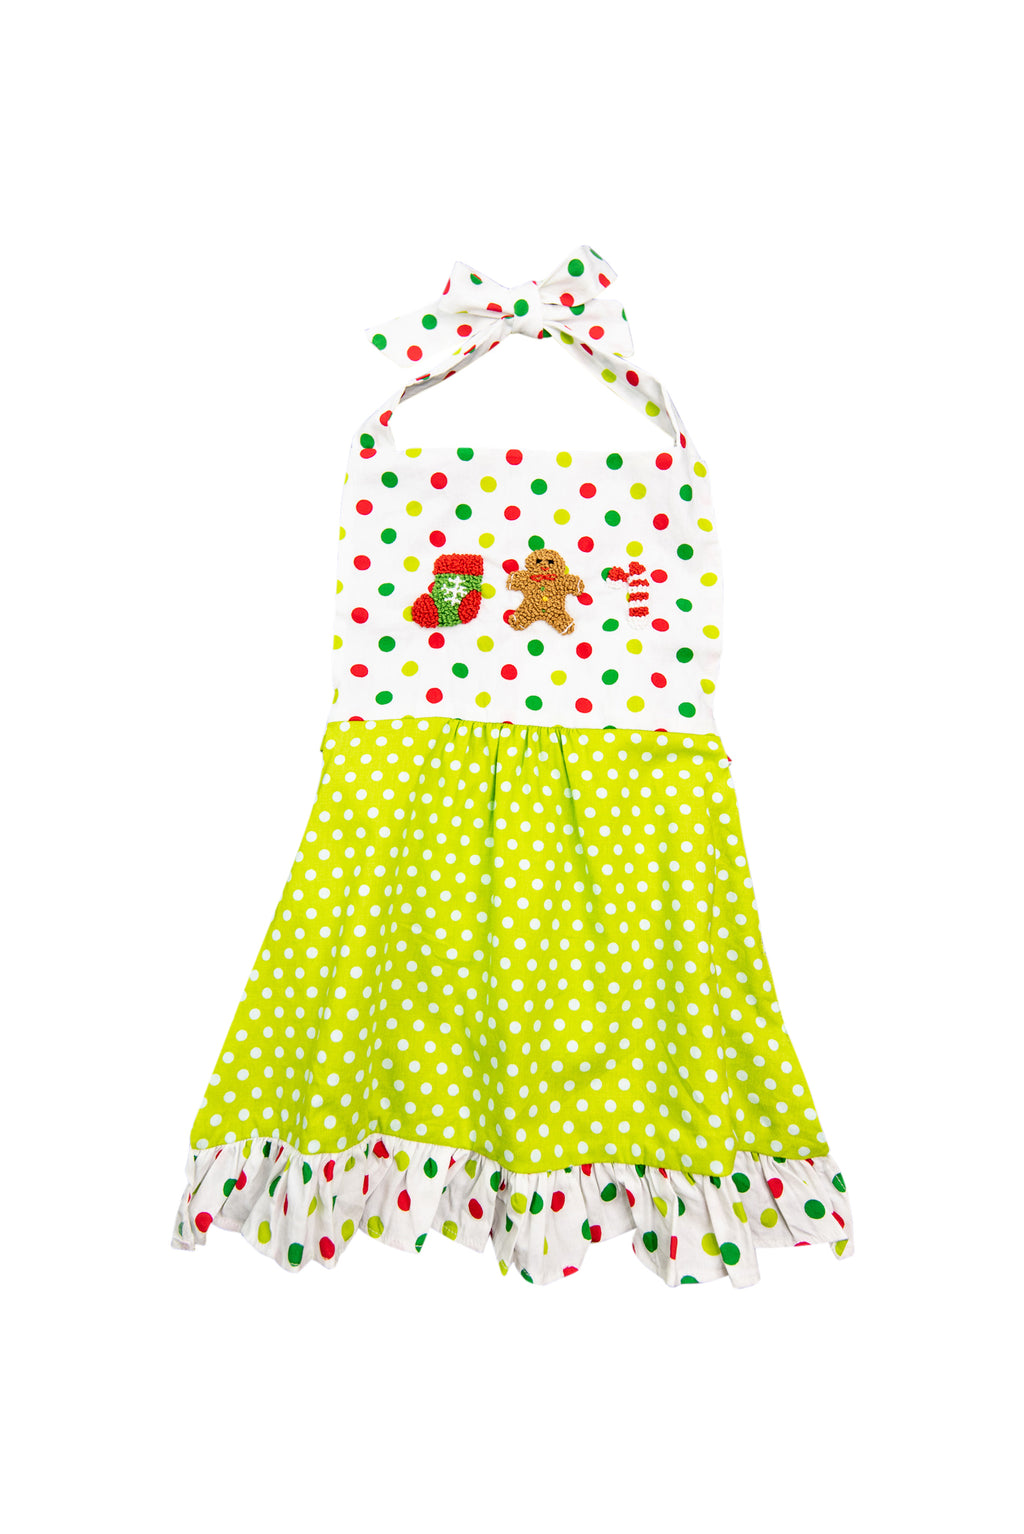 French Knot Polka Dot Christmas Apron